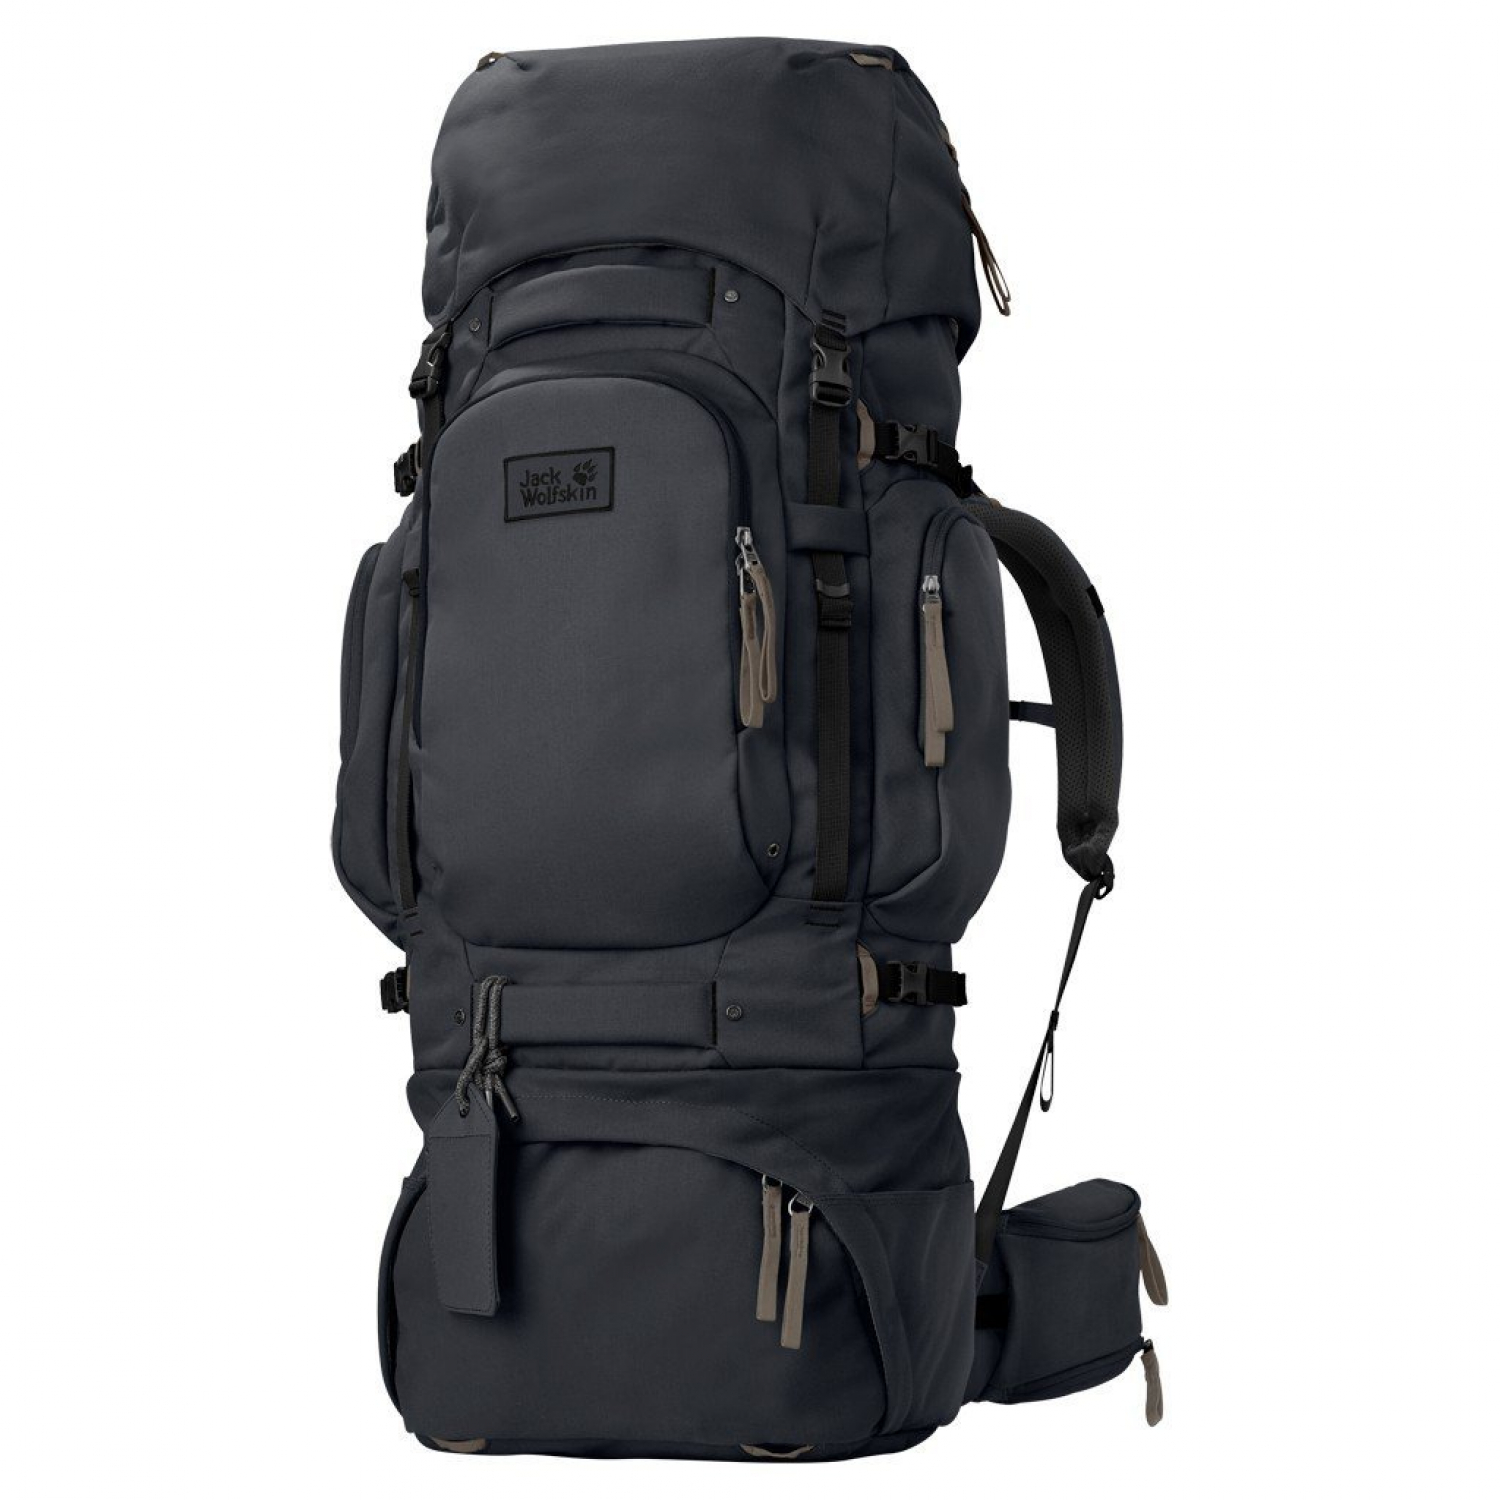 Jack Wolfskin Hobo King 85 Pack phantom Wanderrucksack